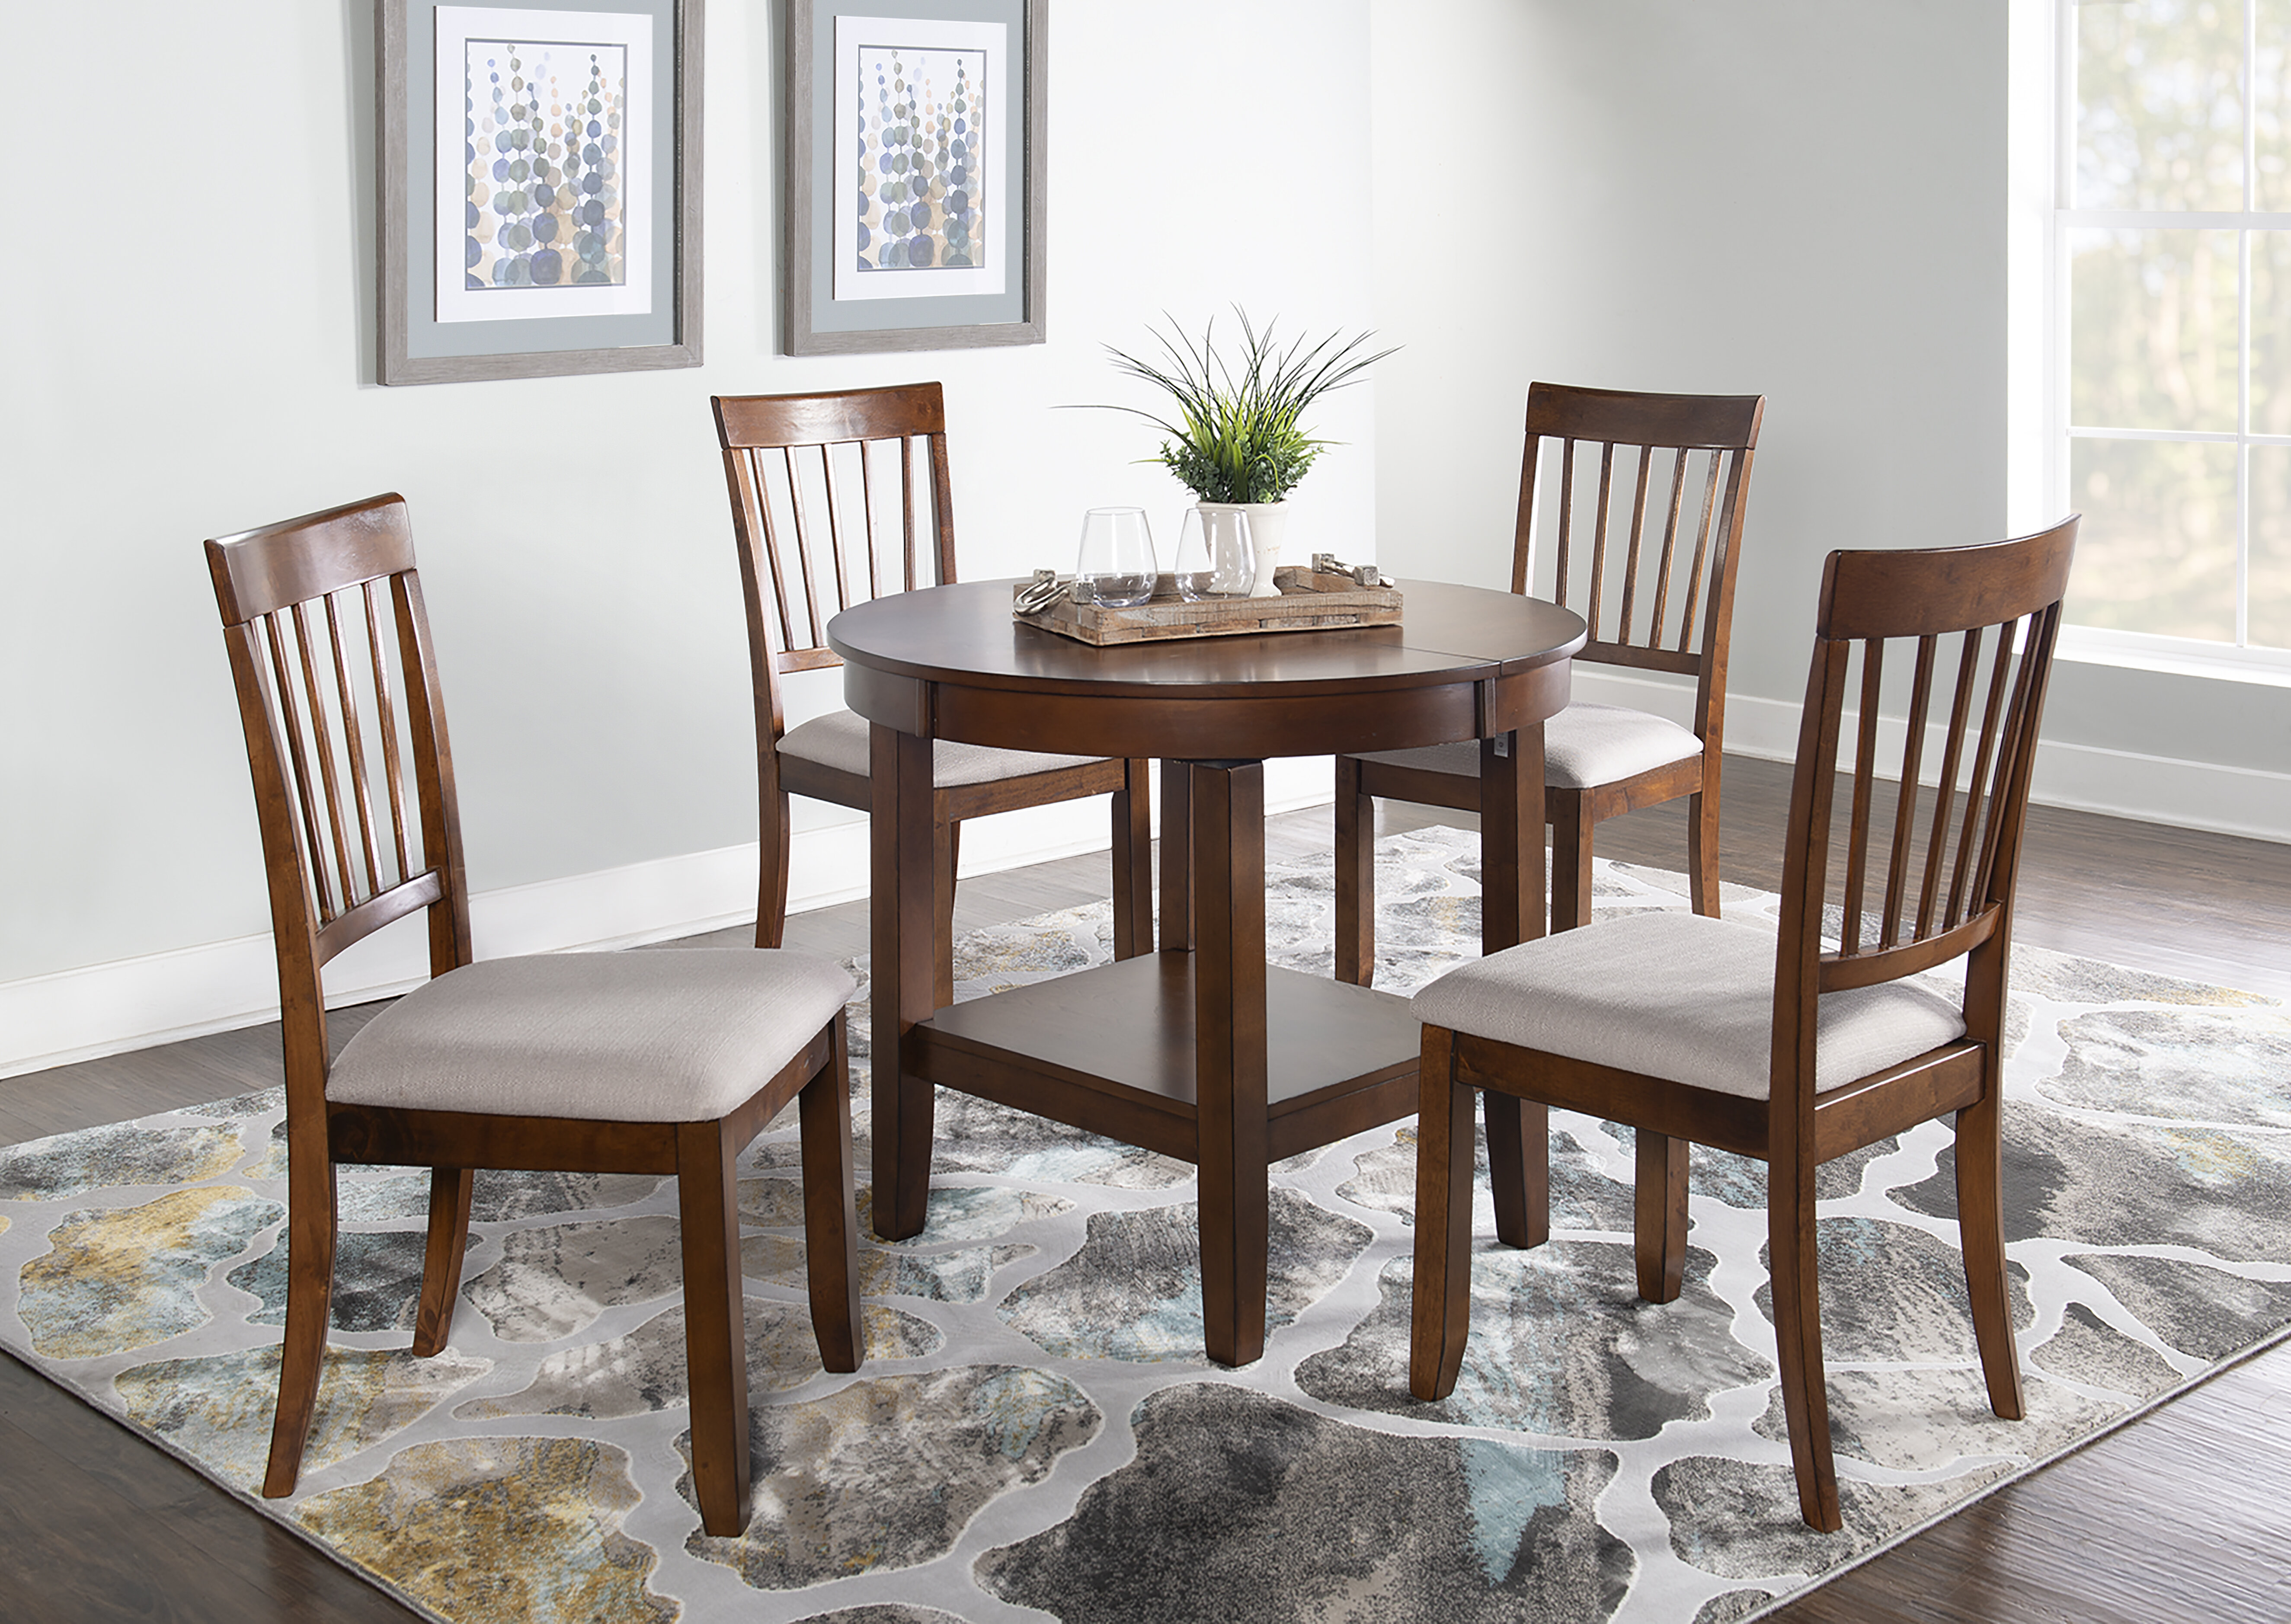 Silver Dining Table And Chairs, Red Barrel Studio Drumraw 5 Piece Drop Leaf Dining Set Reviews Wayfair